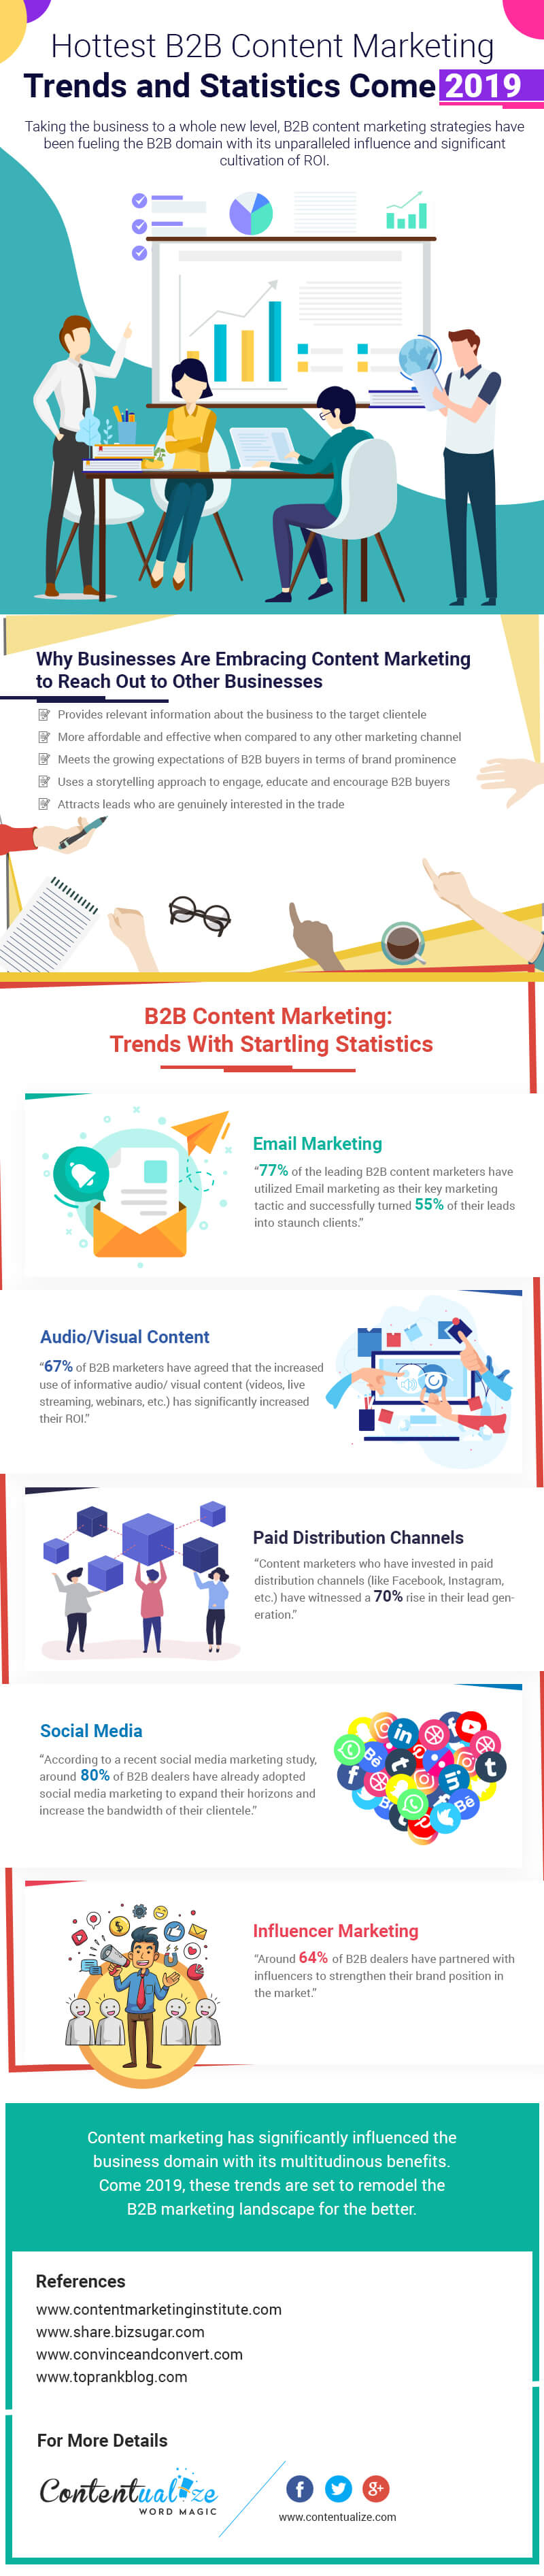 Best B2B Content Marketing Trends in 2019 - Infographic